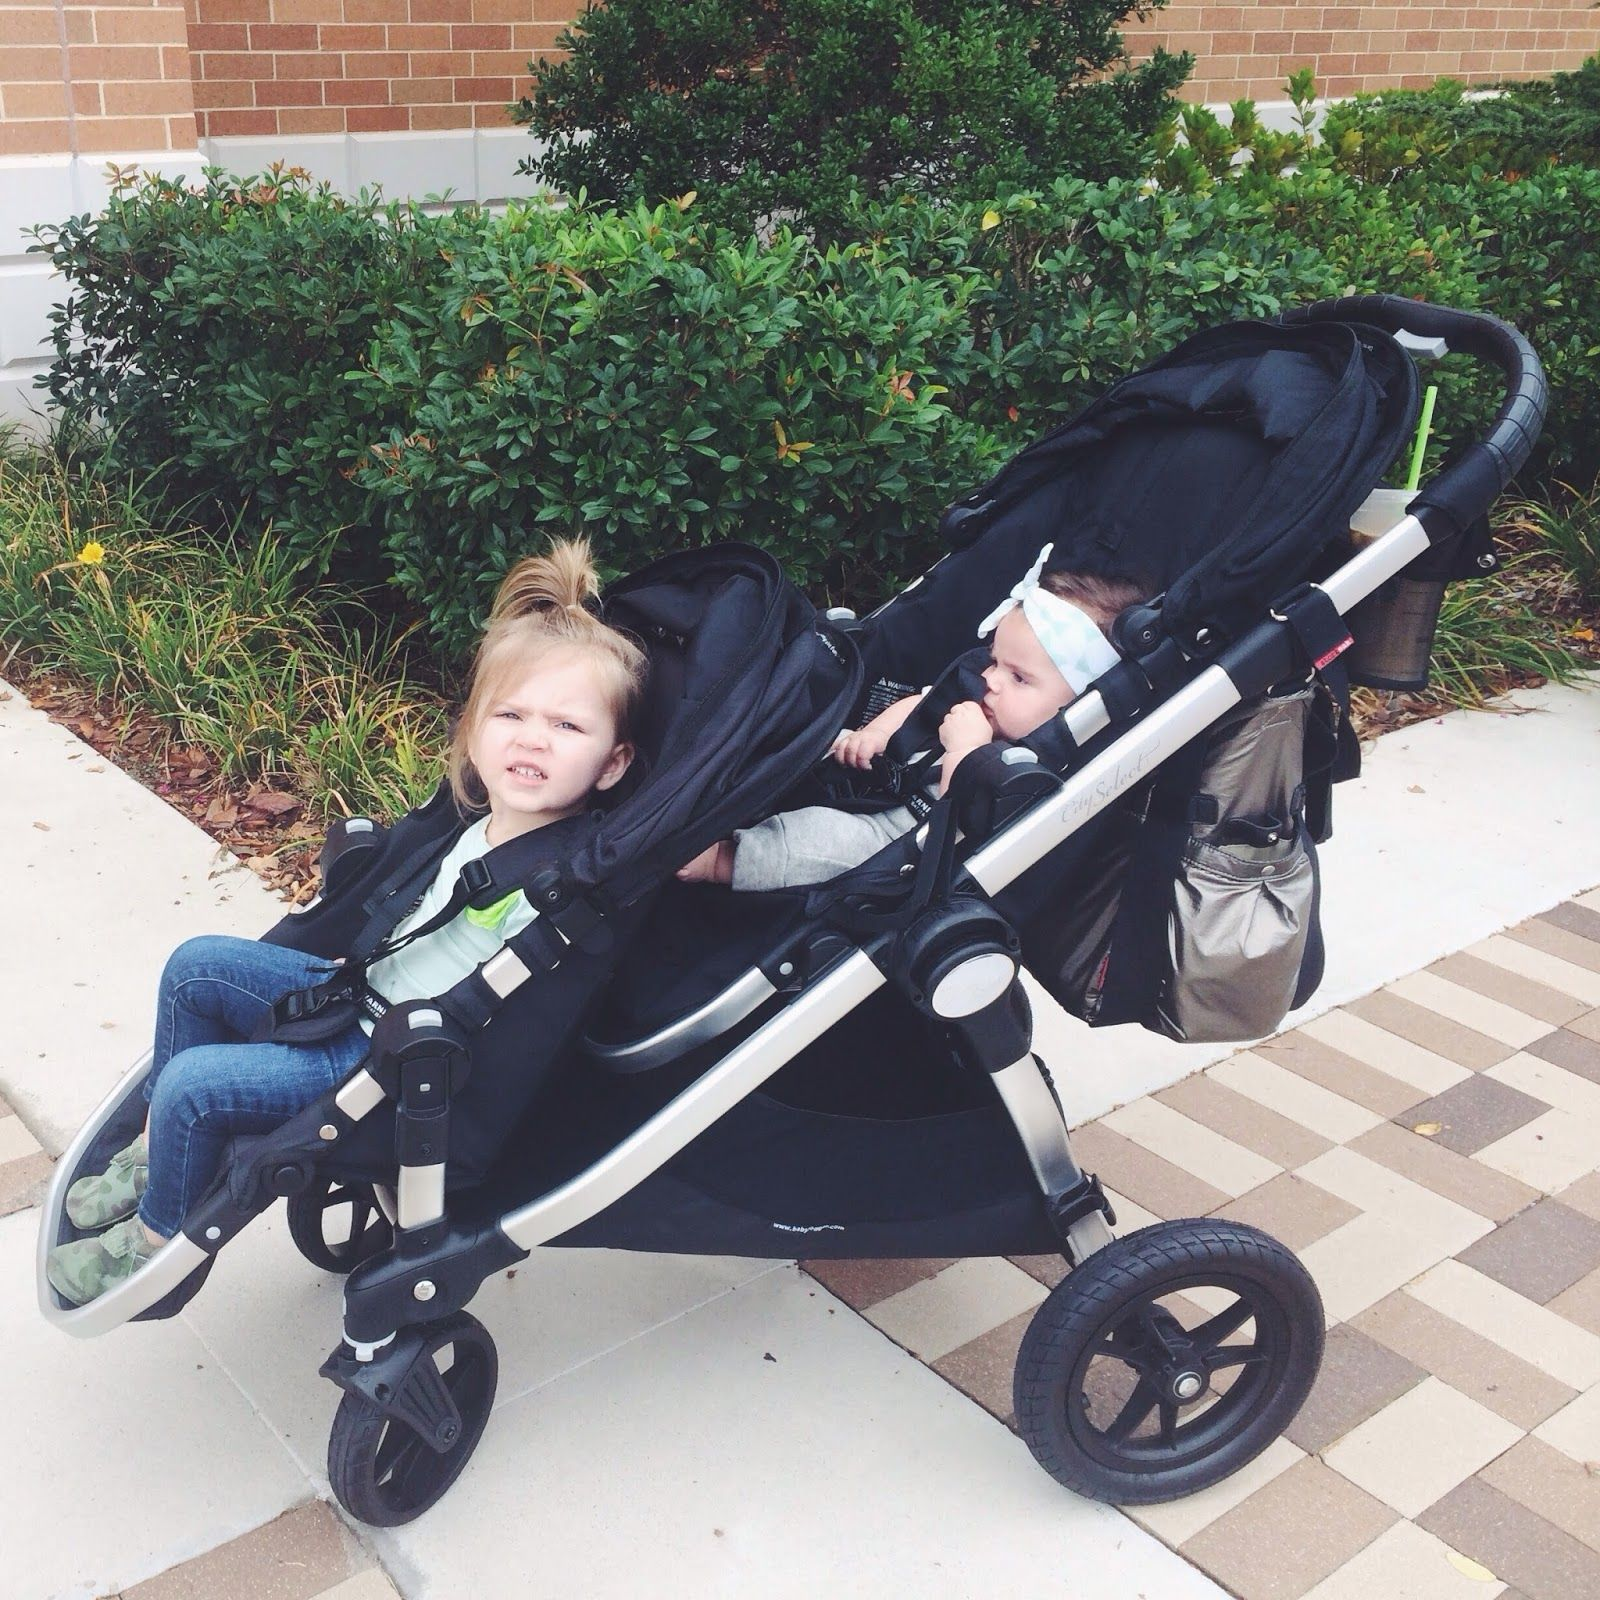 Baby Jogger City Select Double Stroller. Thinking about